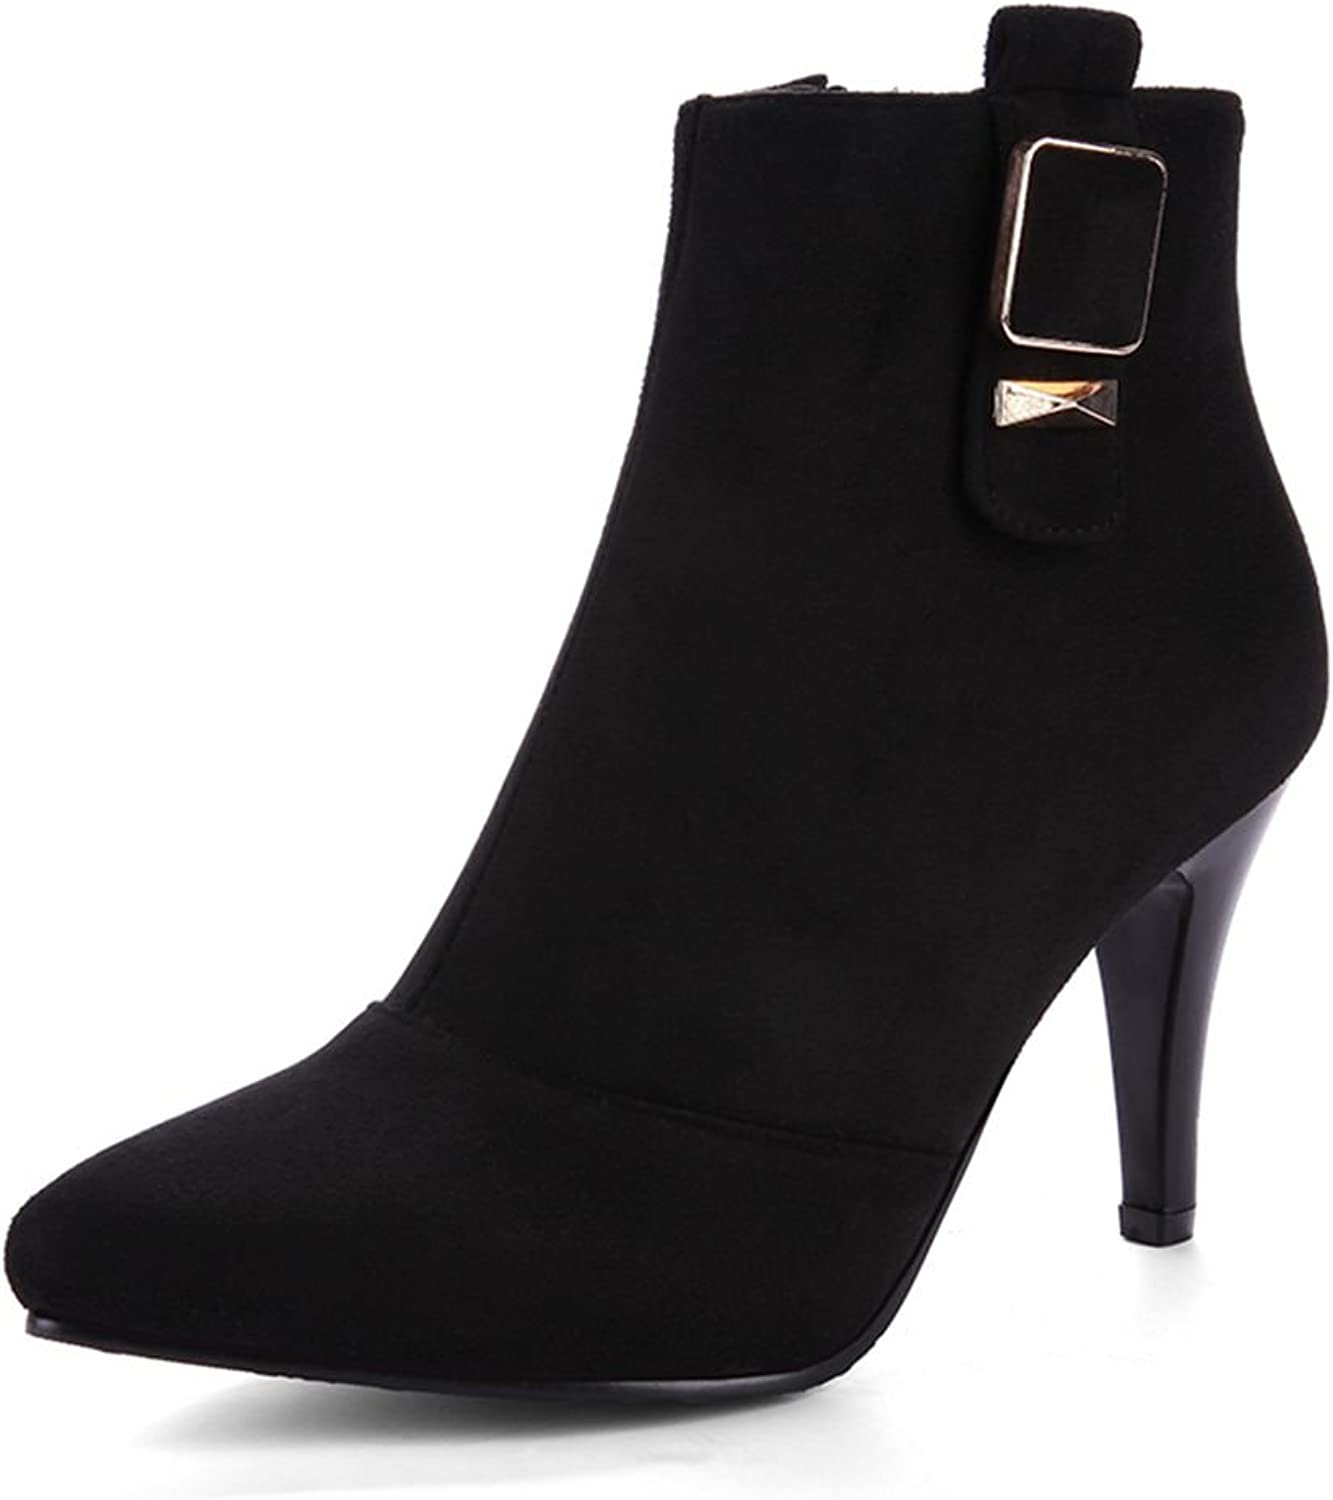 SaraIris Buckle Zipper Stiletto Heels Pointed Toe Solid Ankle Boots for Women